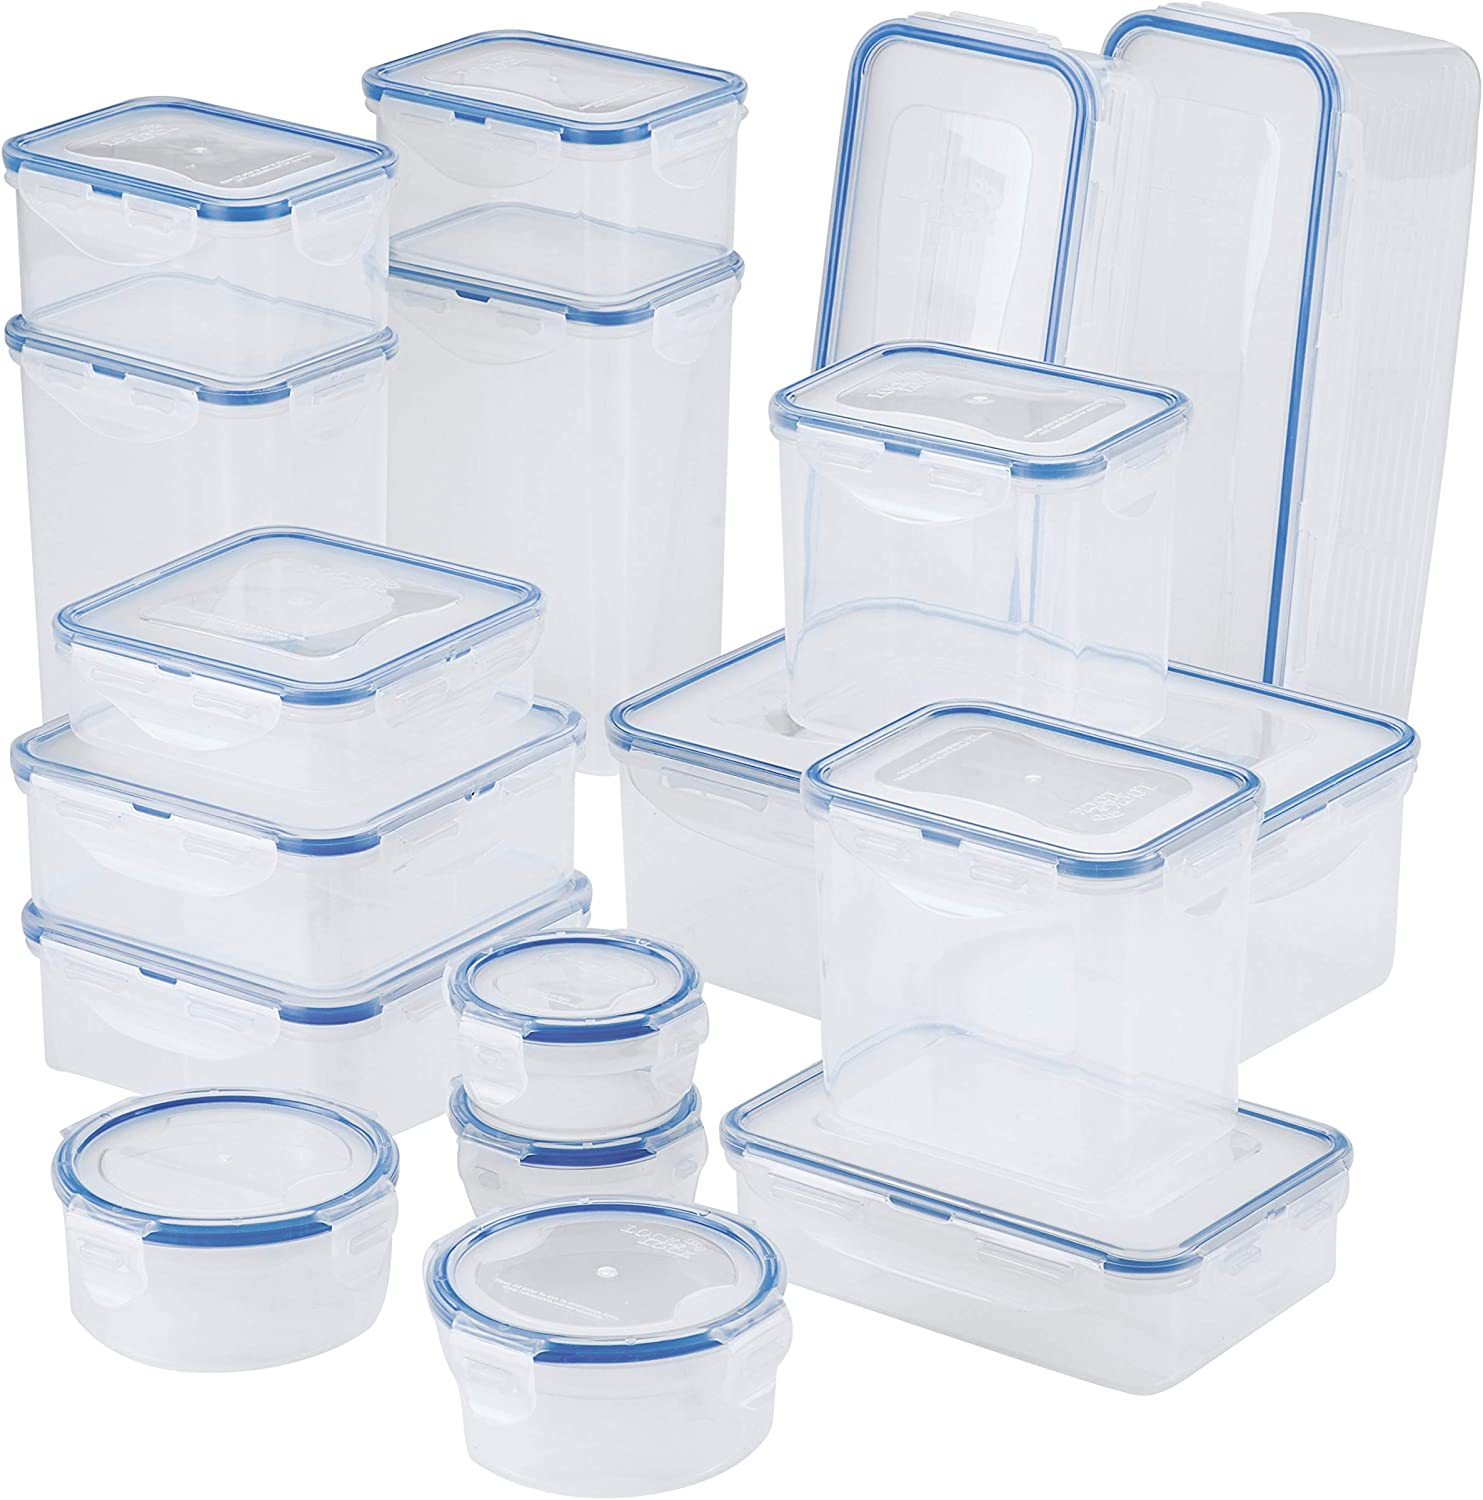 LOCK & LOCK Easy Essential Storage Set/Food Containers Airtight Bins/BPA-Free/Dishwasher Safe, 38 Piece, Clear